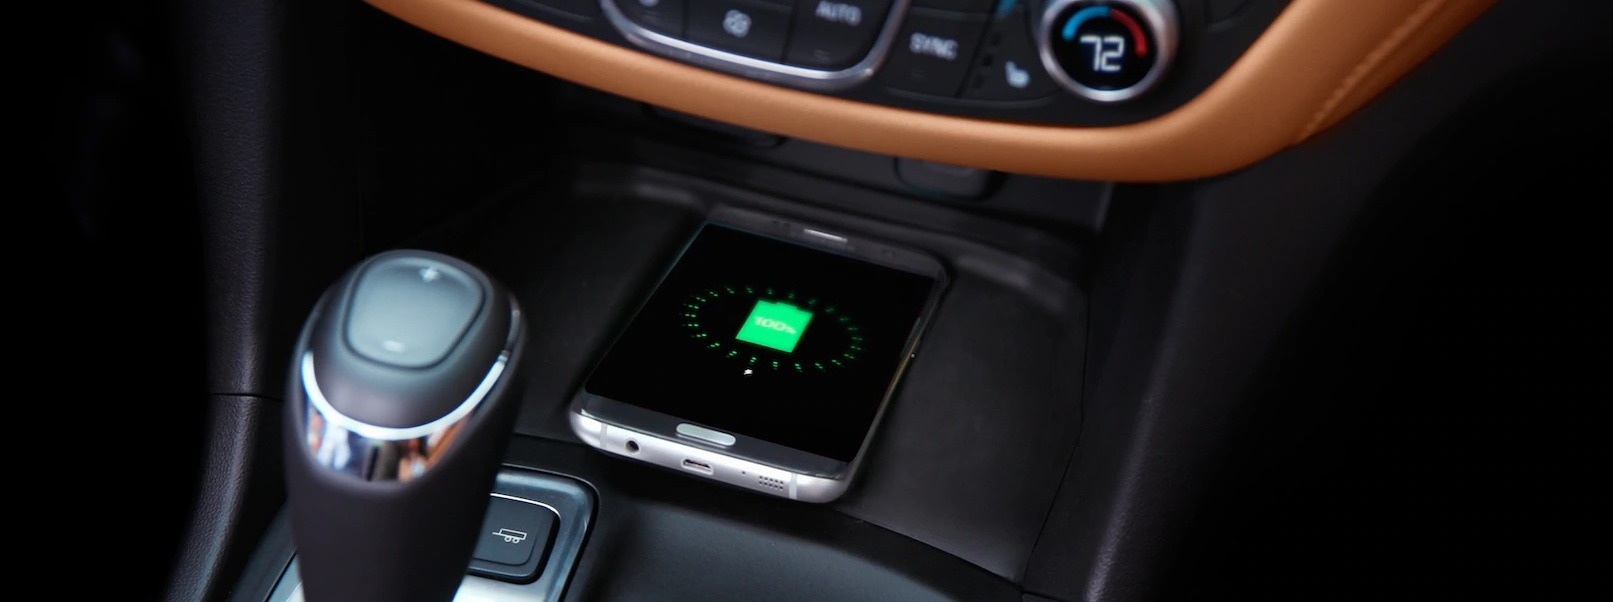 Wireless Charger in the 2020 Equinox